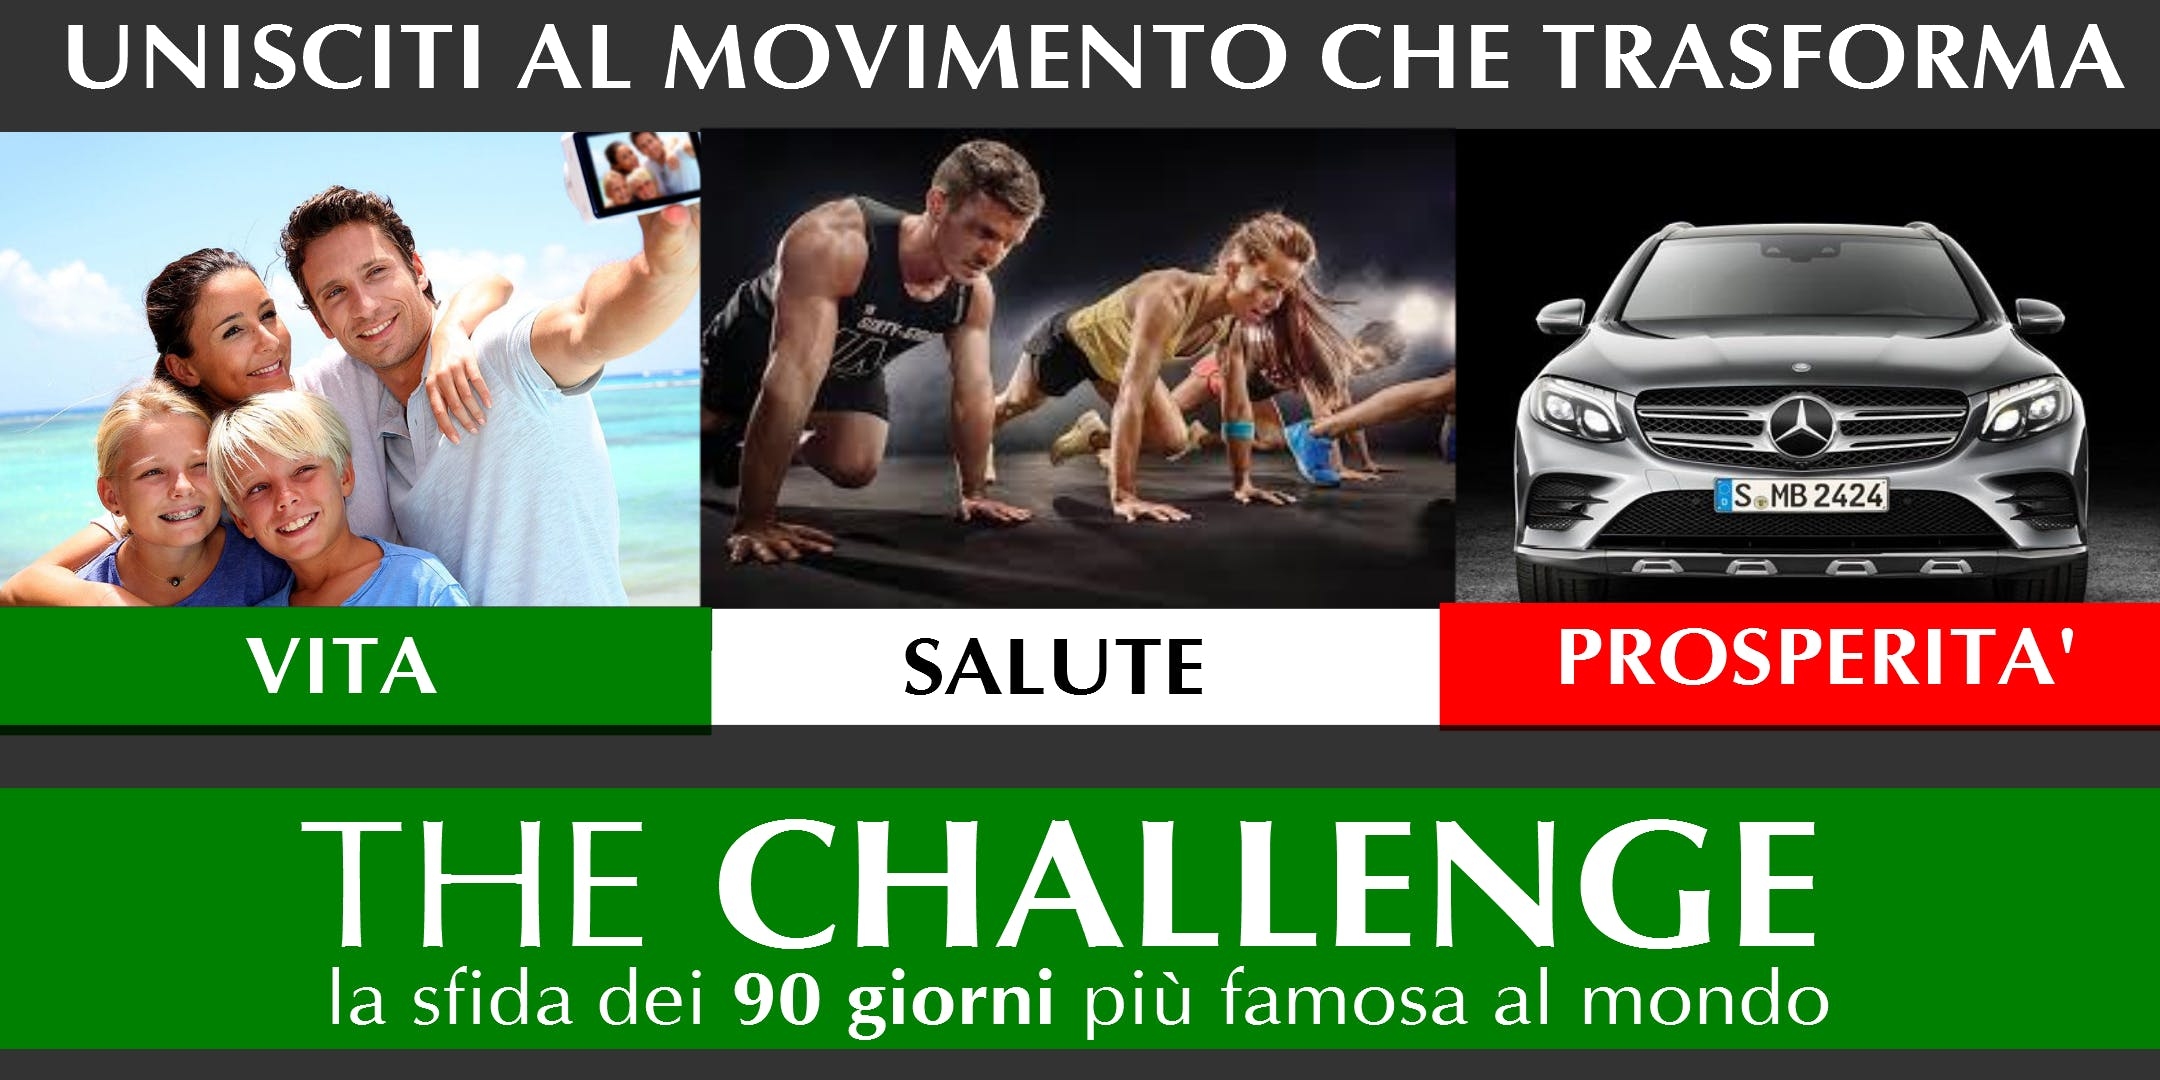 TheCHALLENGE (TO) 18/02